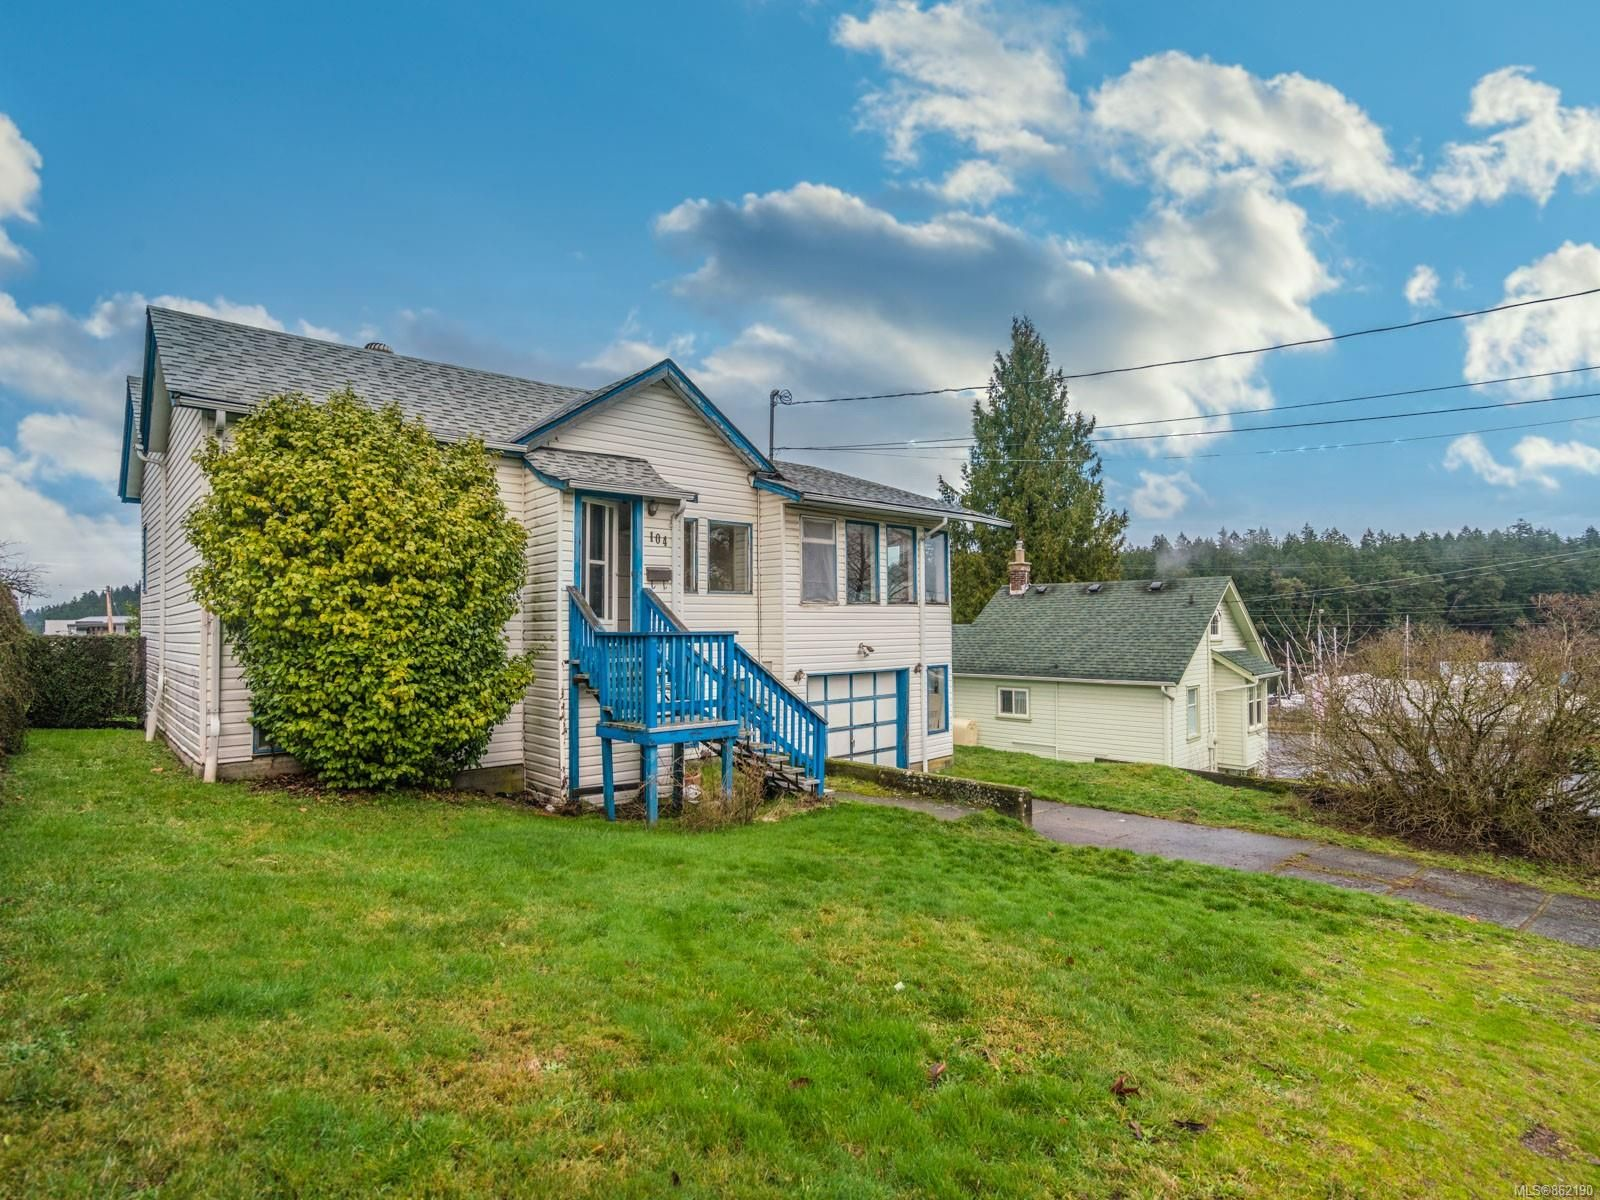 Main Photo: 104 St. George St in : Na Brechin Hill House for sale (Nanaimo)  : MLS®# 862190